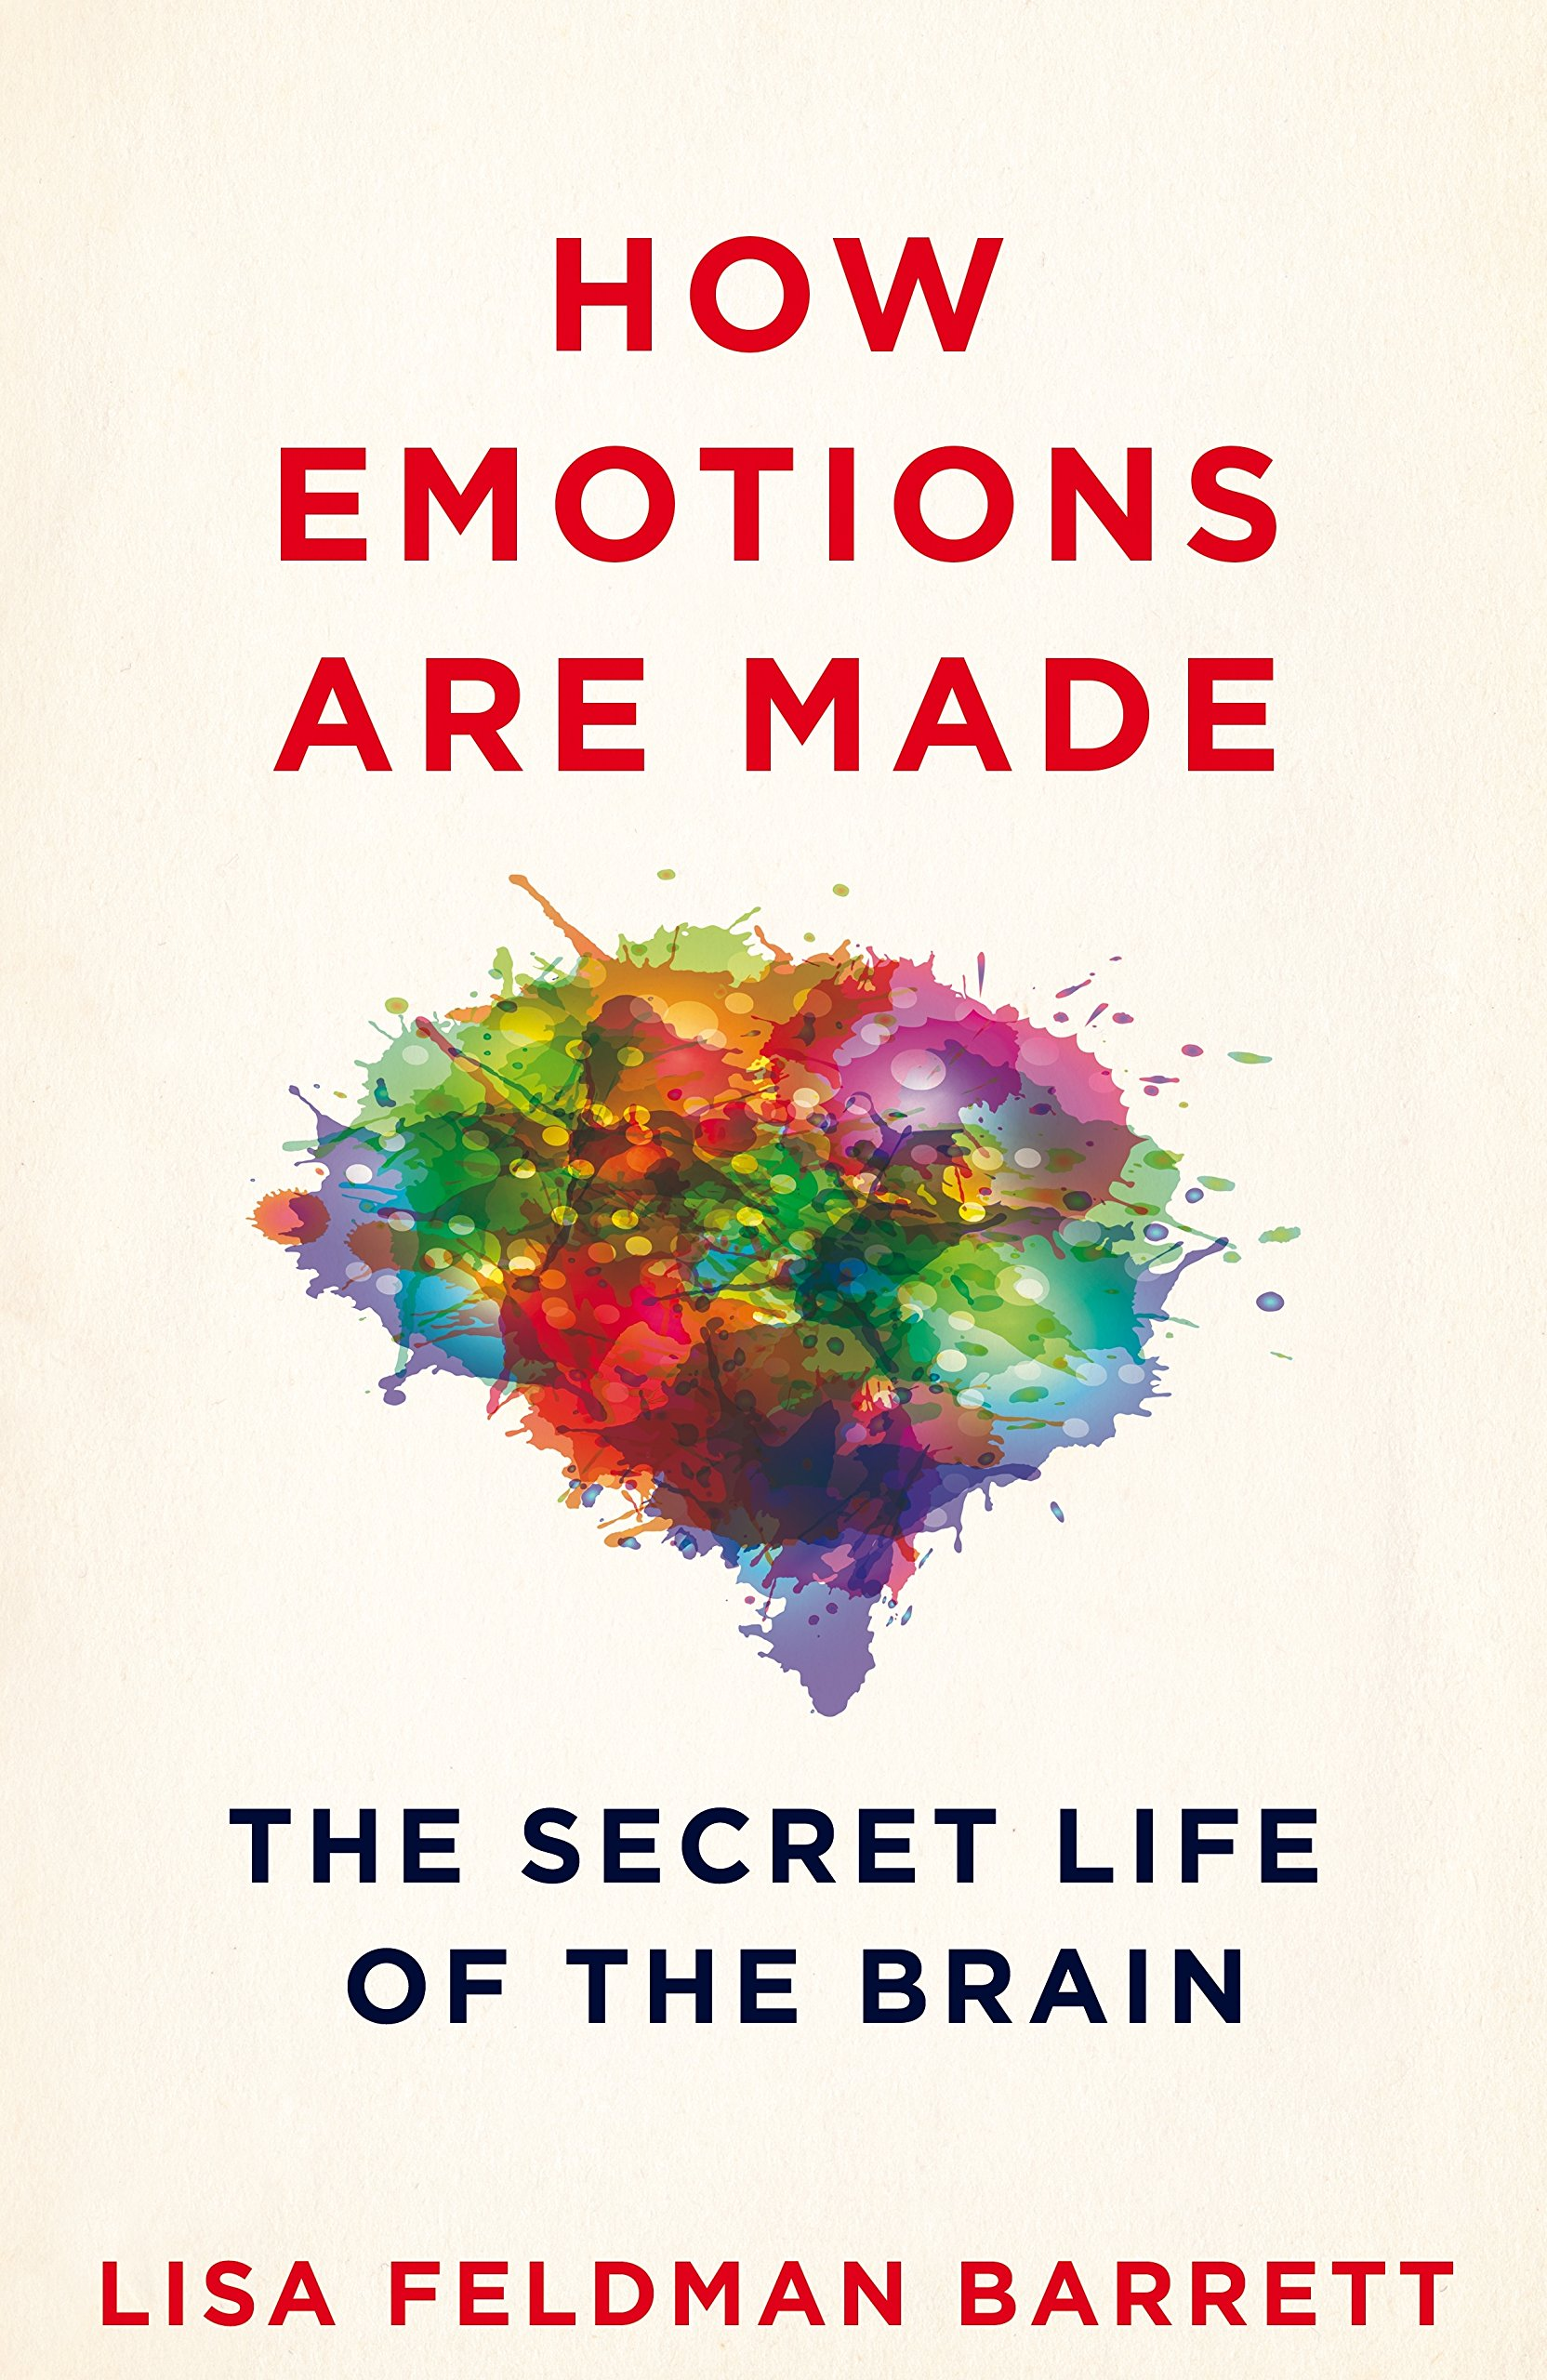 How Emotions Are Made: The Secret Life of the Brain, Lisa Feldman Barrett